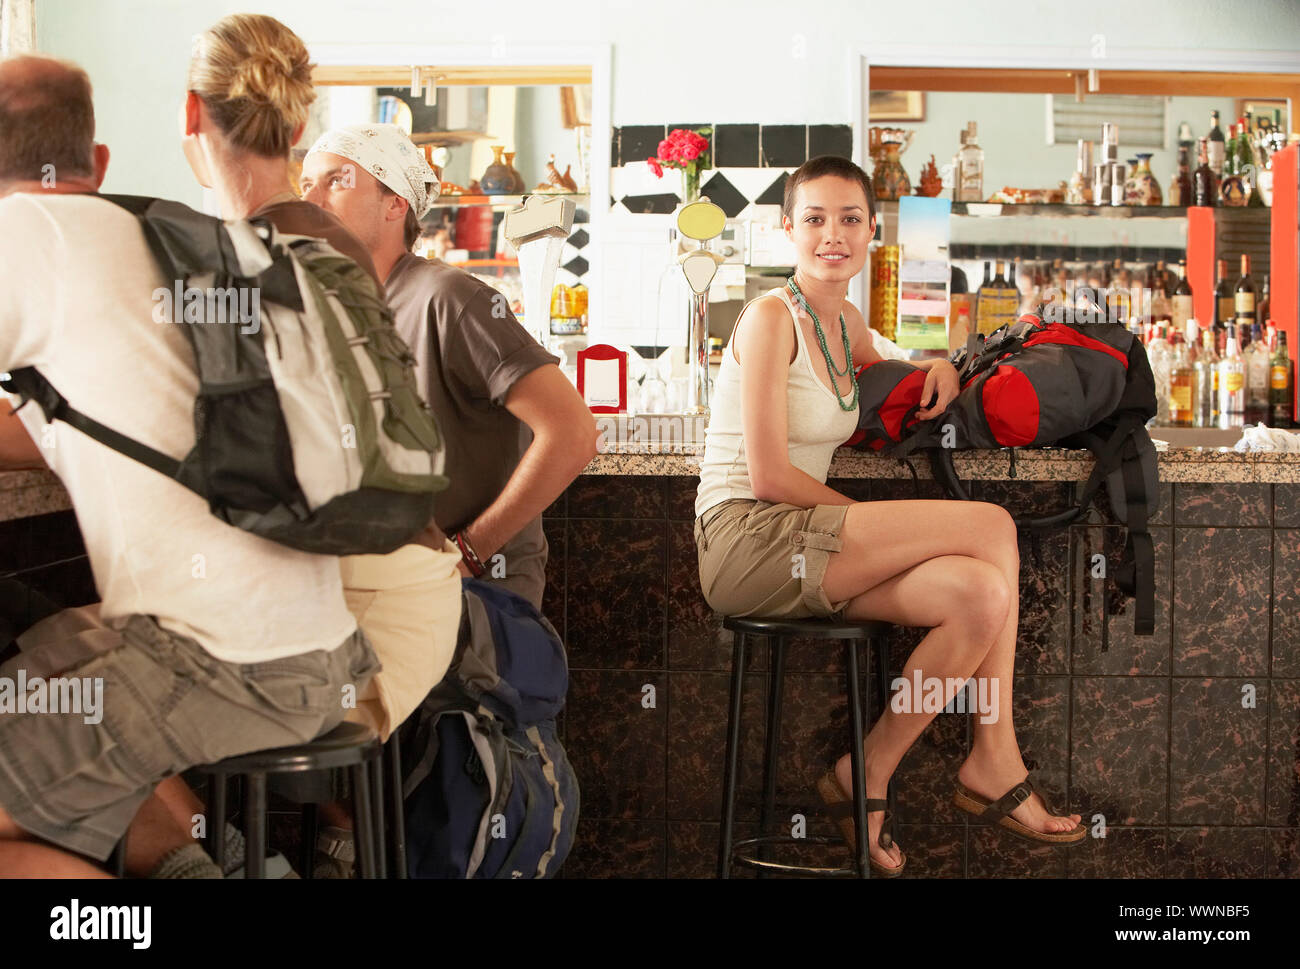 Hikers in Bar Stock Photo